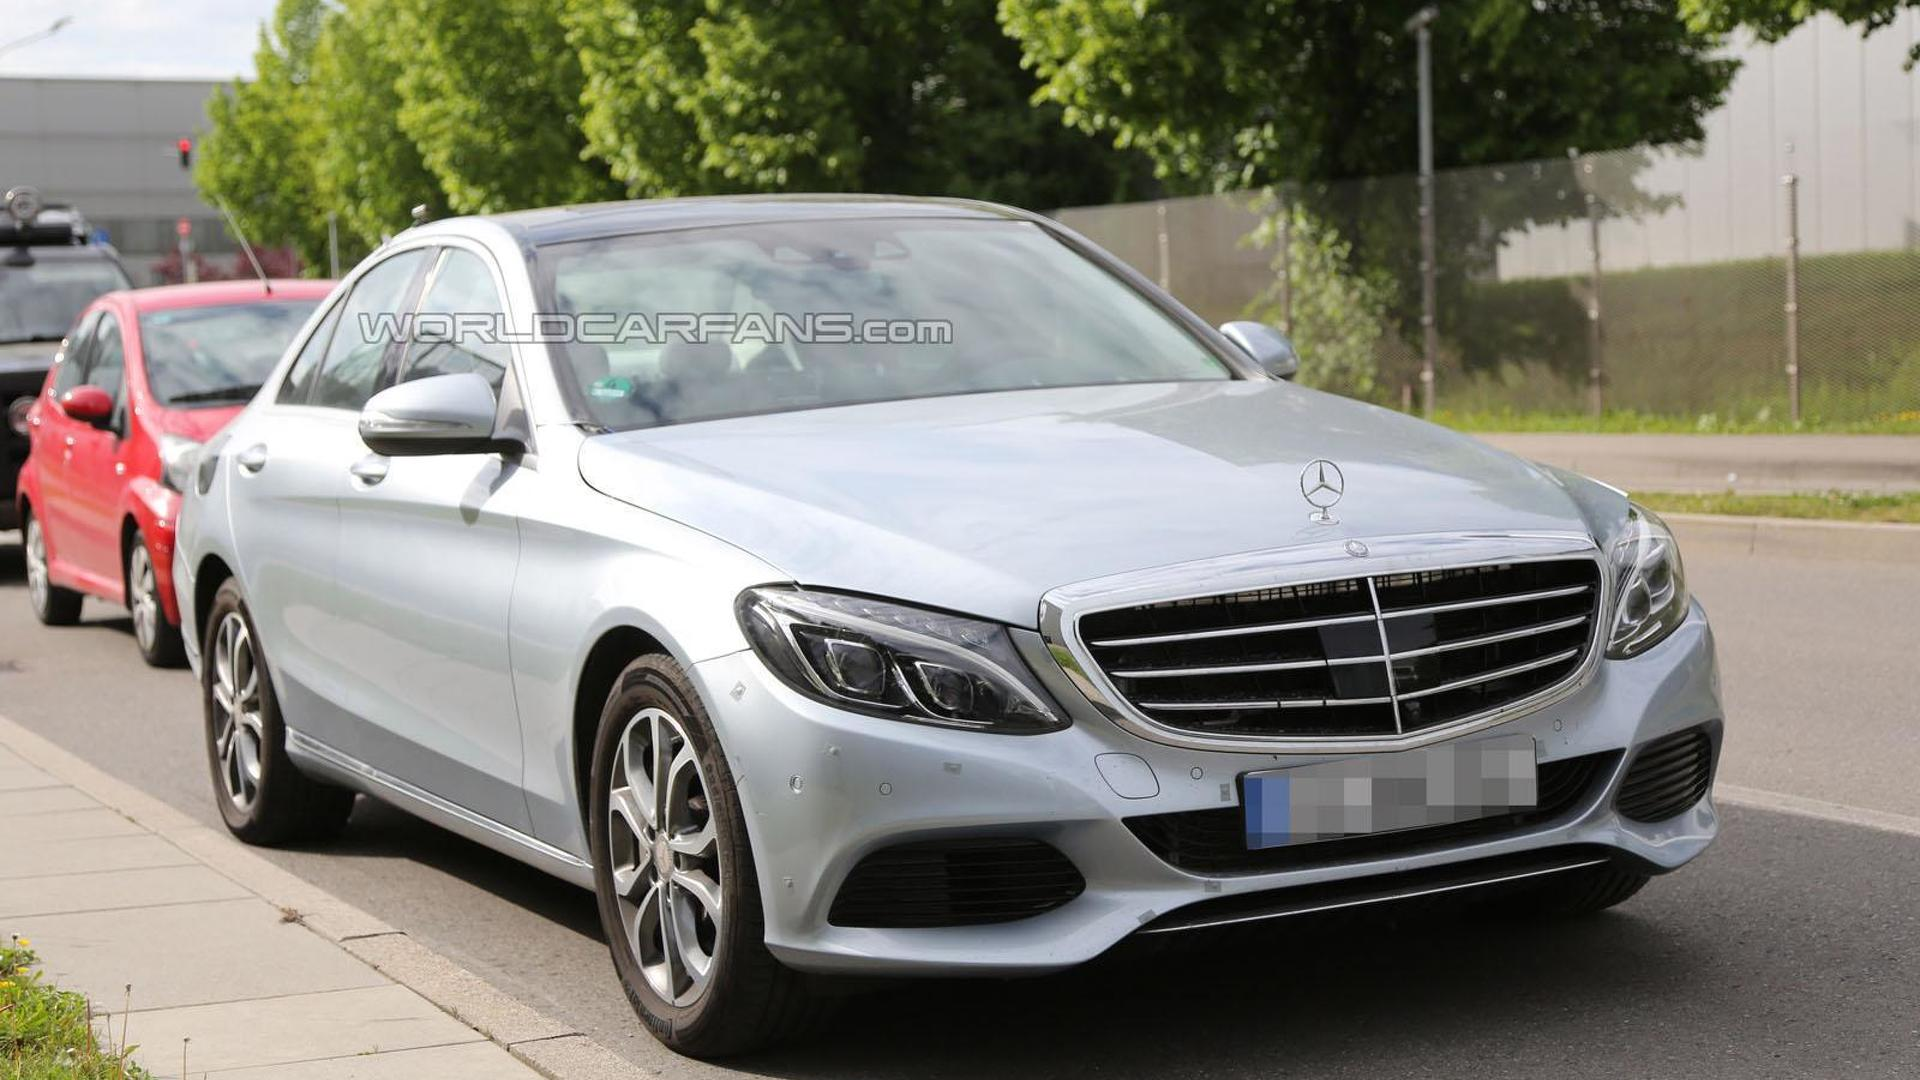 Mercedes-Benz C-Class plug-in hybrid to use 2 0-liter petrol